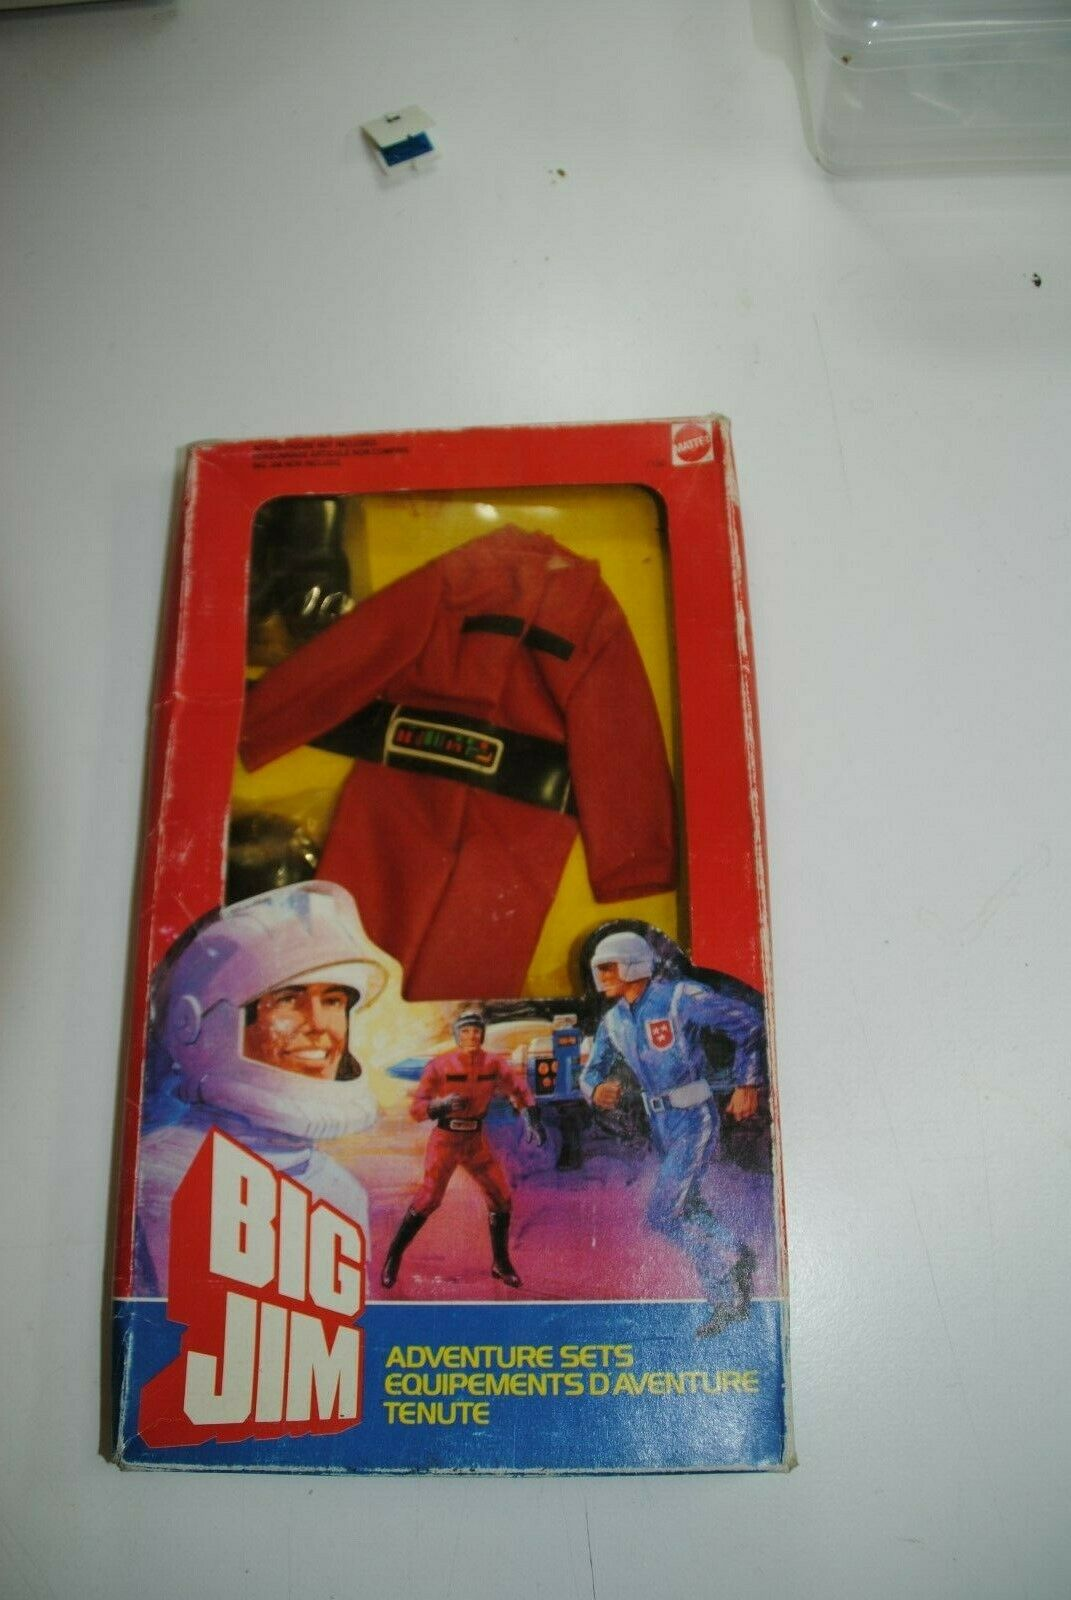 Big Jim adventure sets  Attaque conducteur de véhicule  Comme neuf IN BOX Rare Set